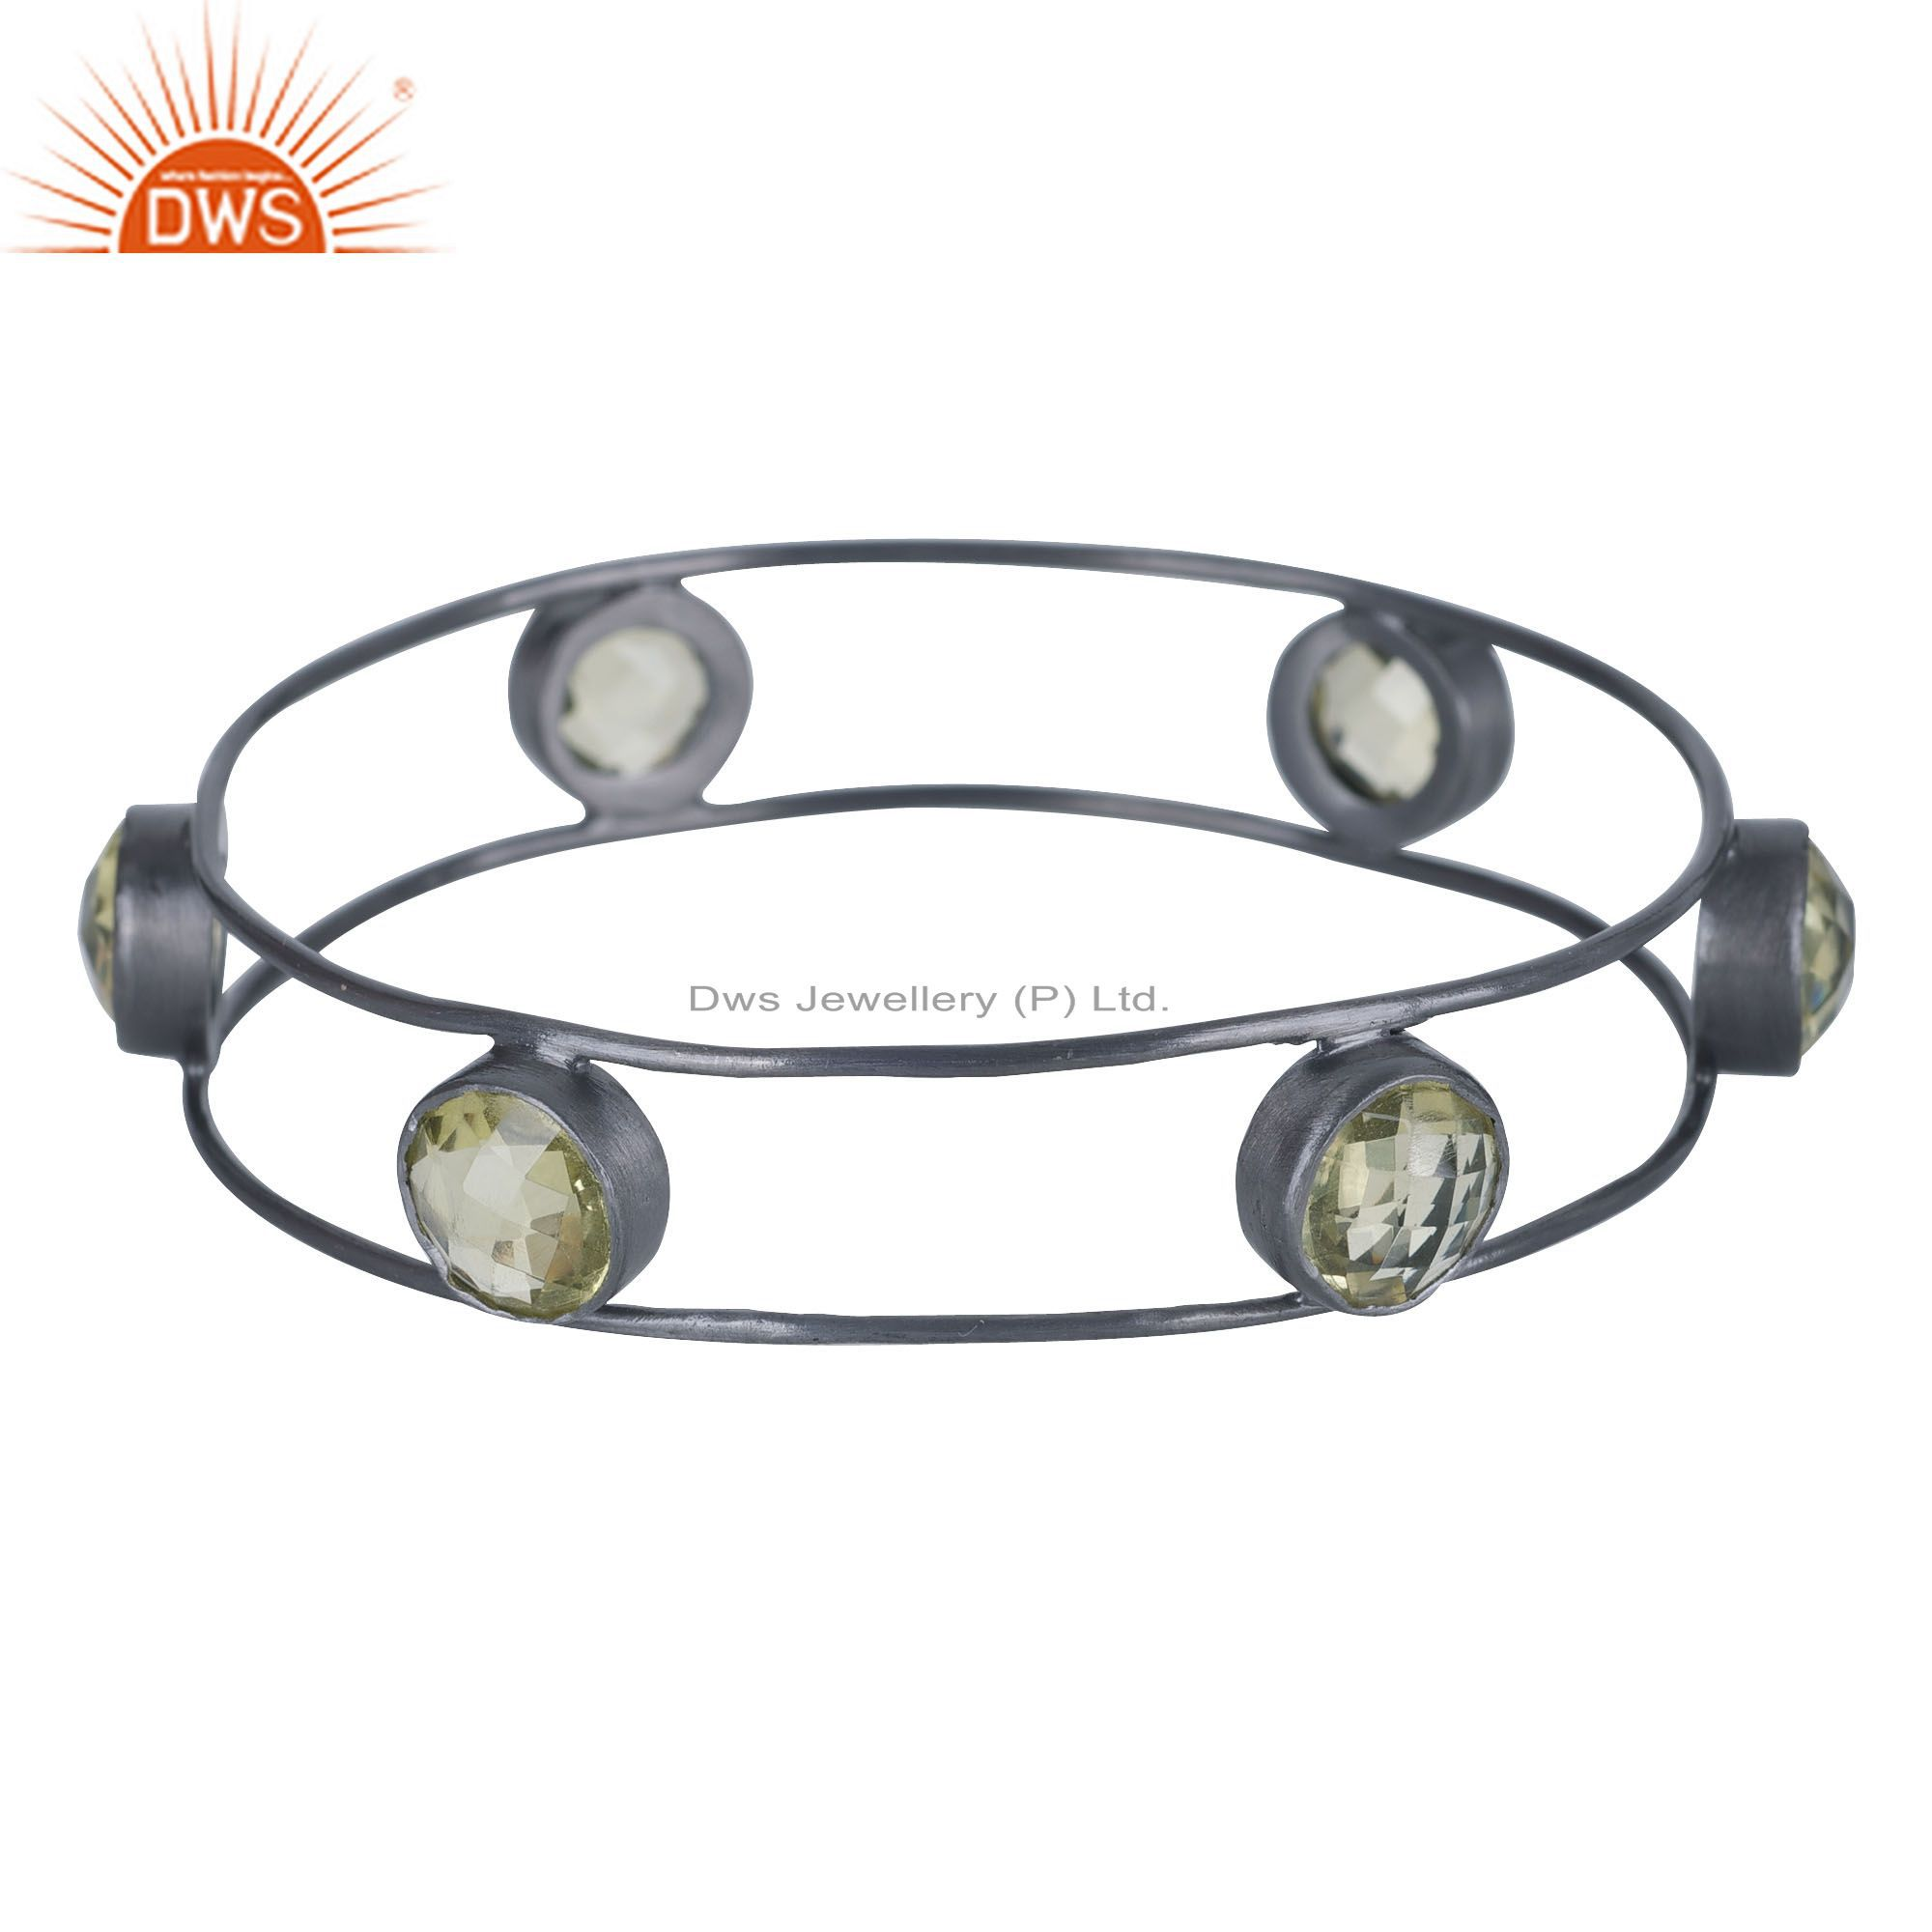 Handcrafted Sterling Silver With Oxidized Lemon Topaz Bangle Bracelet